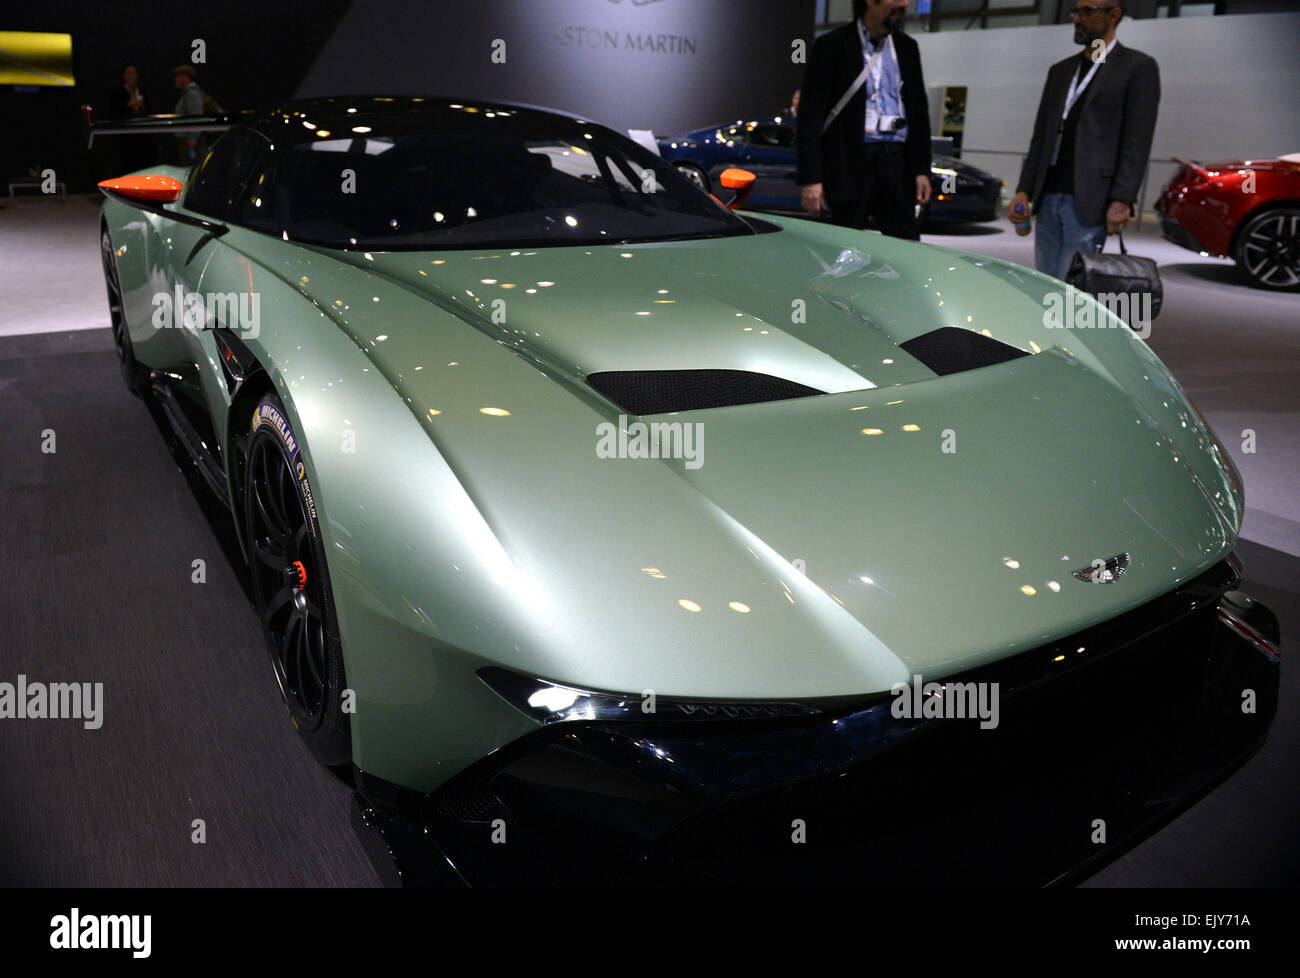 New York, USA. 2nd Apr, 2015. An Aston Martin Vulcan is displayed at the New York International Auto Show in New - Stock Image